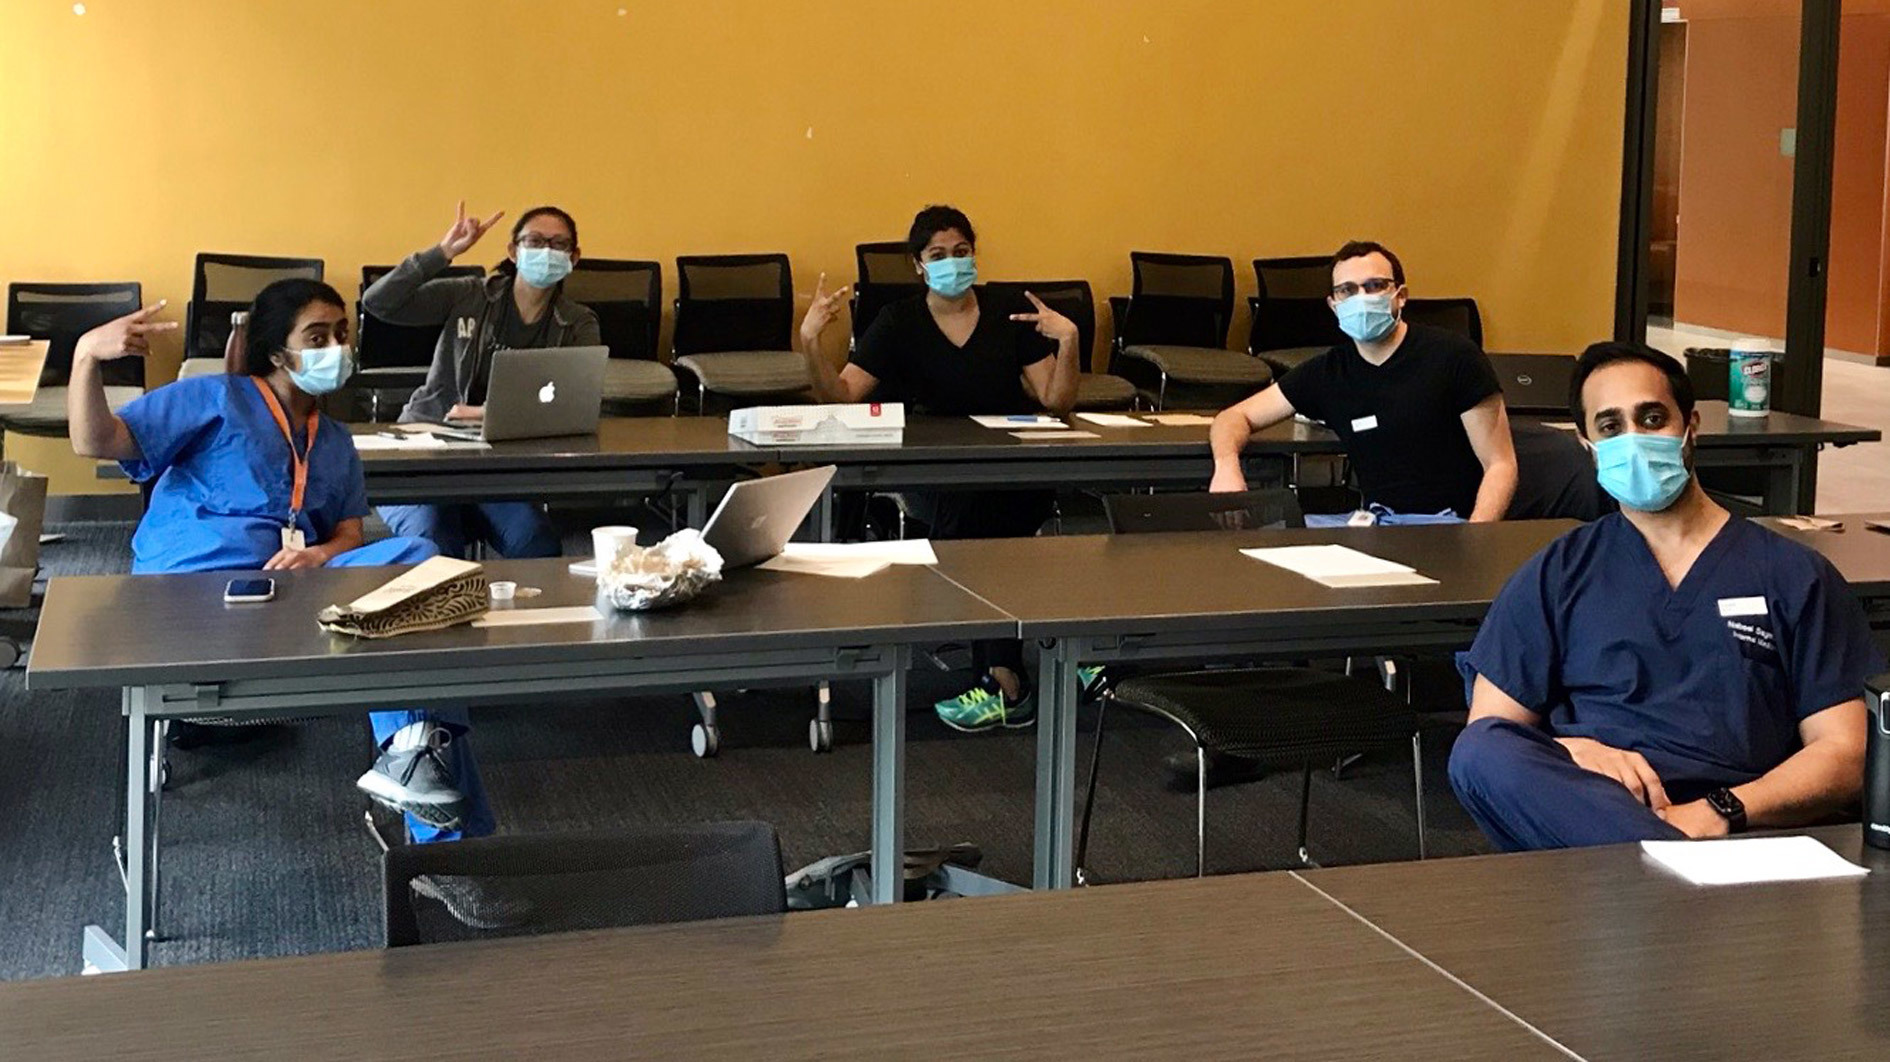 Five Internal Medicine residents spaced out in a classroom studying.